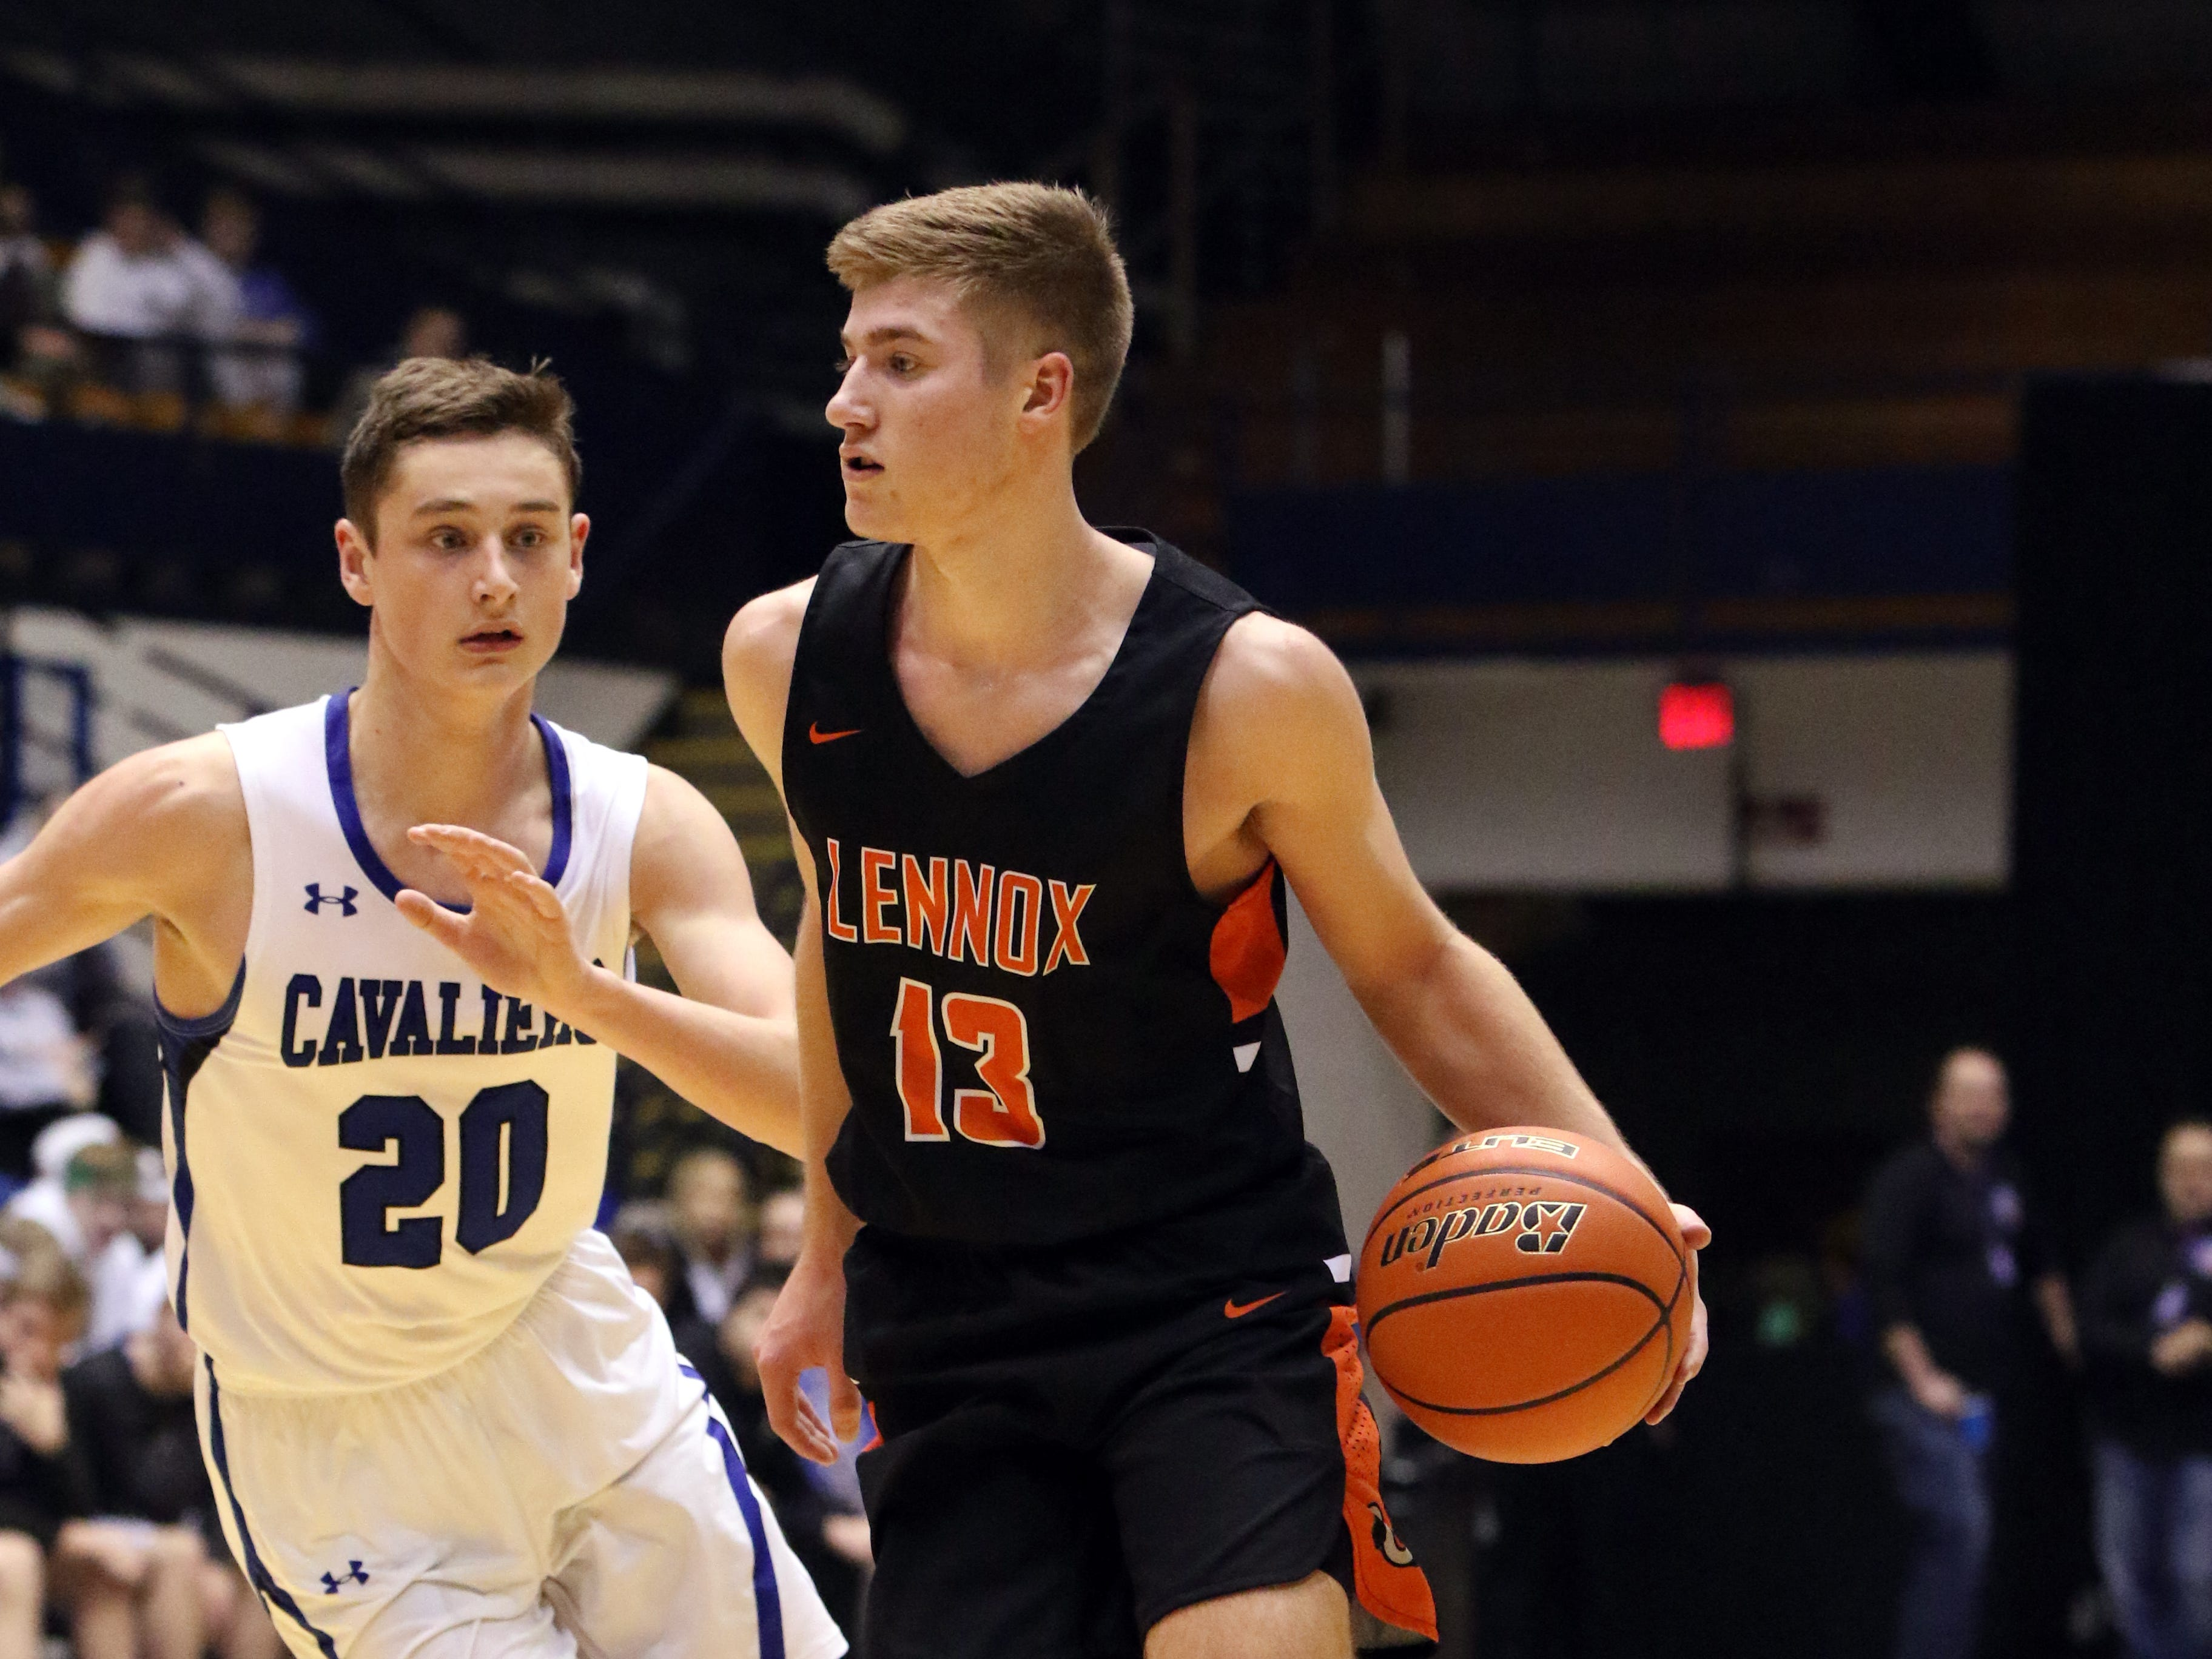 Quincy Ihnen of Lennox dribbles away from the defense by Connor Hollenbeck of St Thomas More during Thursday night's game at the Arena in Sioux Falls.